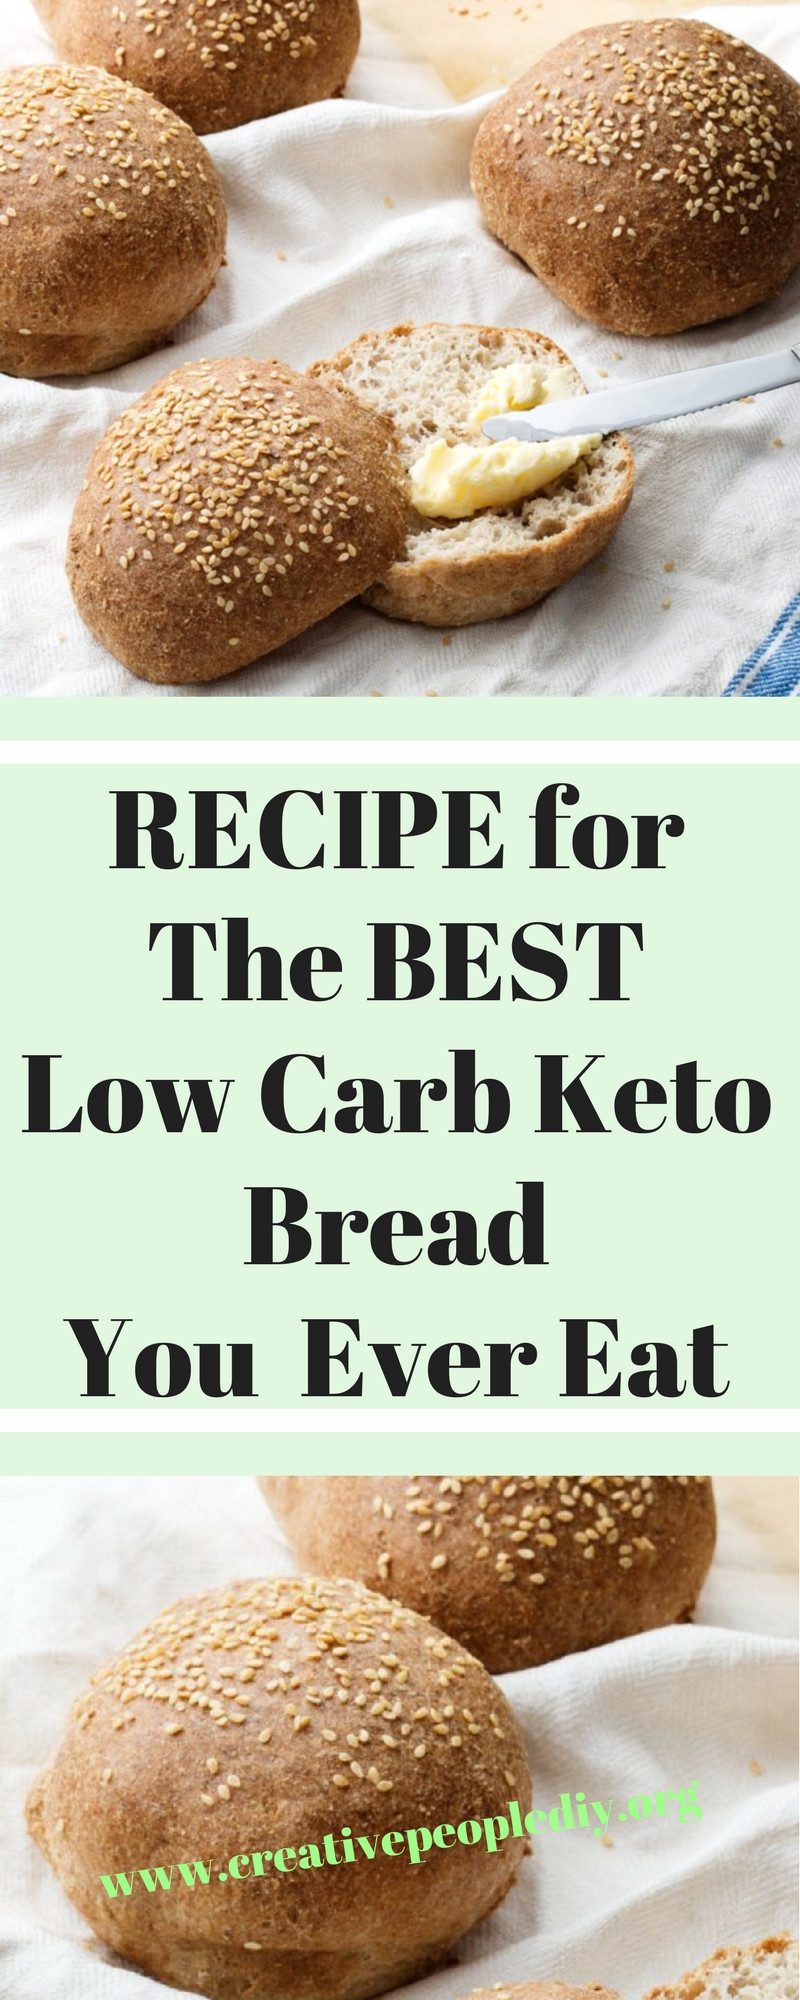 Best Healthy Bread To Eat  RECIPE for The BEST Low Carb Keto Bread You Will Ever Eat